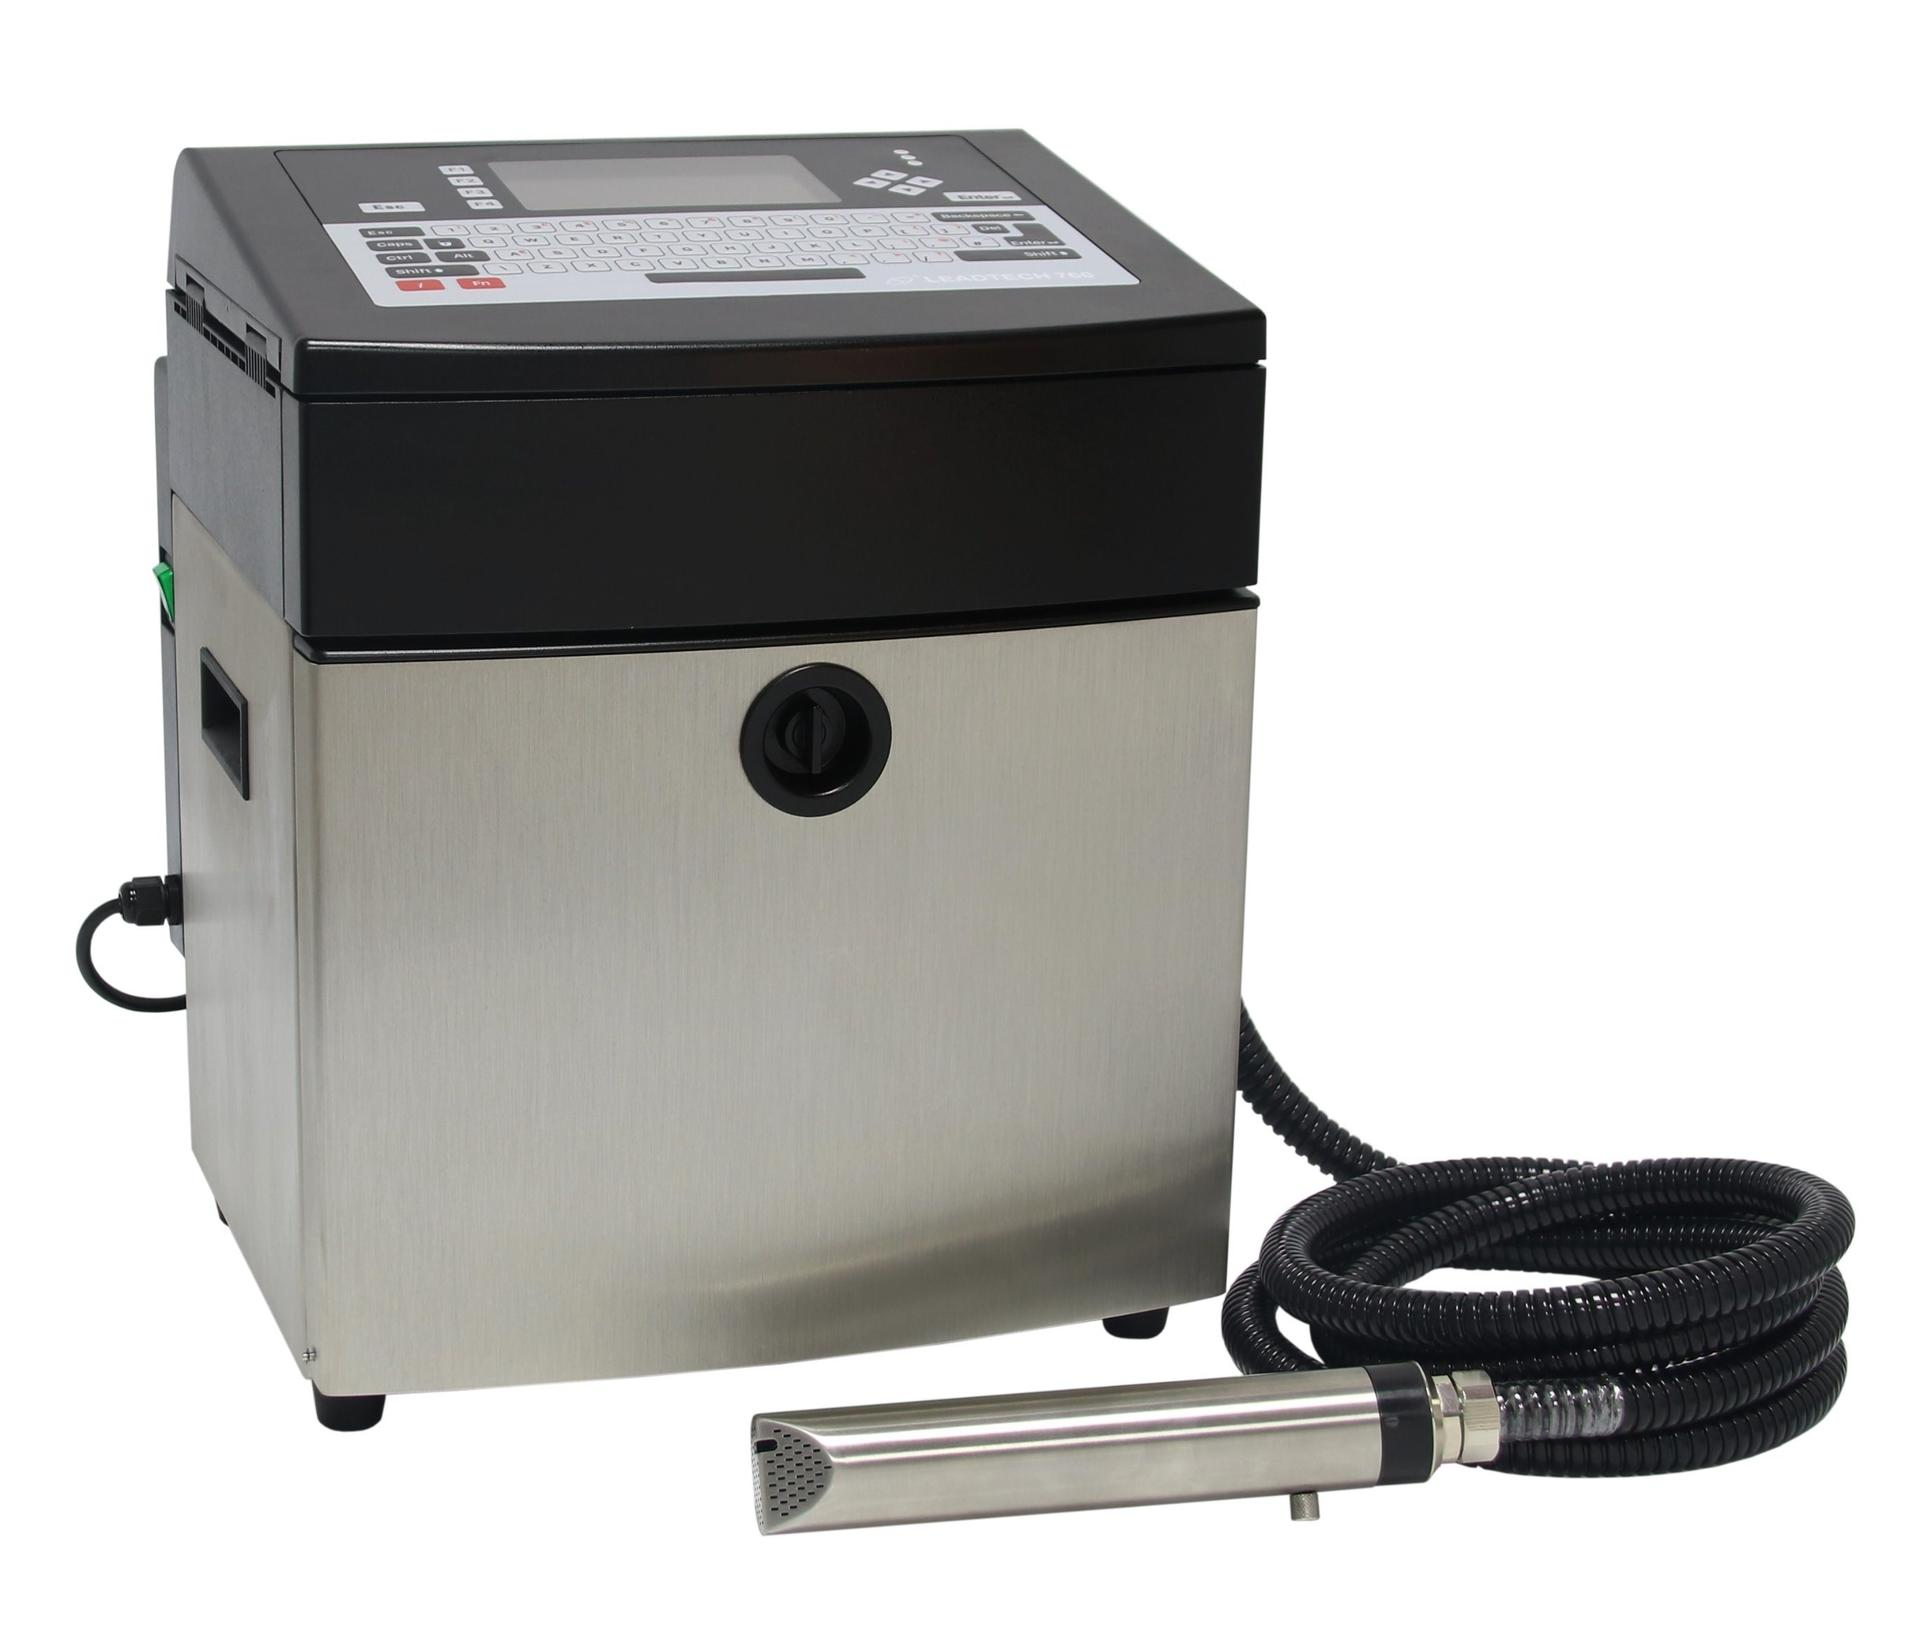 Lead Tech Lt760 Cij Laser Marking Machine Coding Machine Cij Inkjet Printer Printing Machine